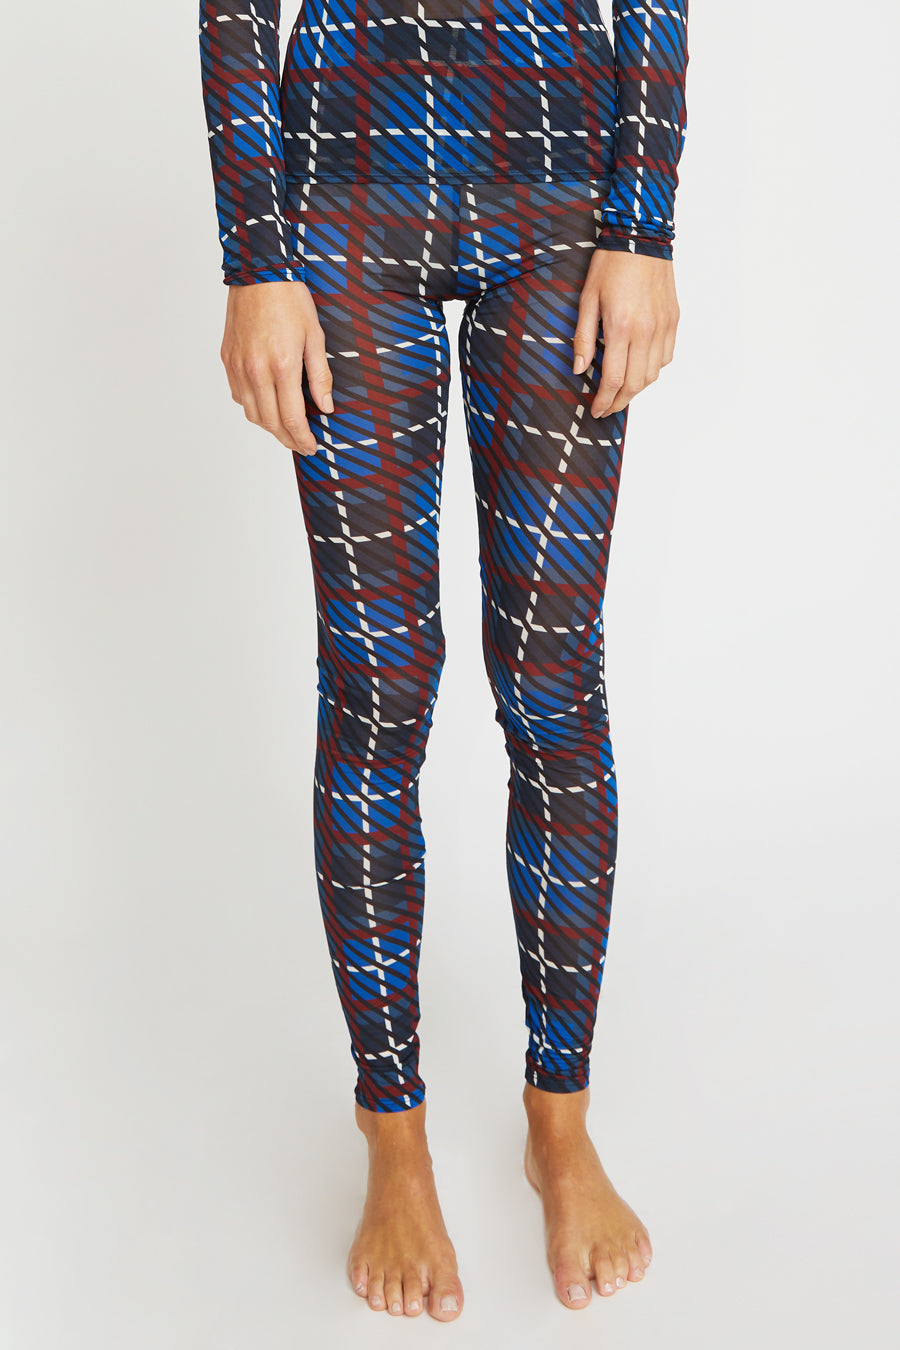 Rodebjer Bianca Legging in Denim Blue Plaid